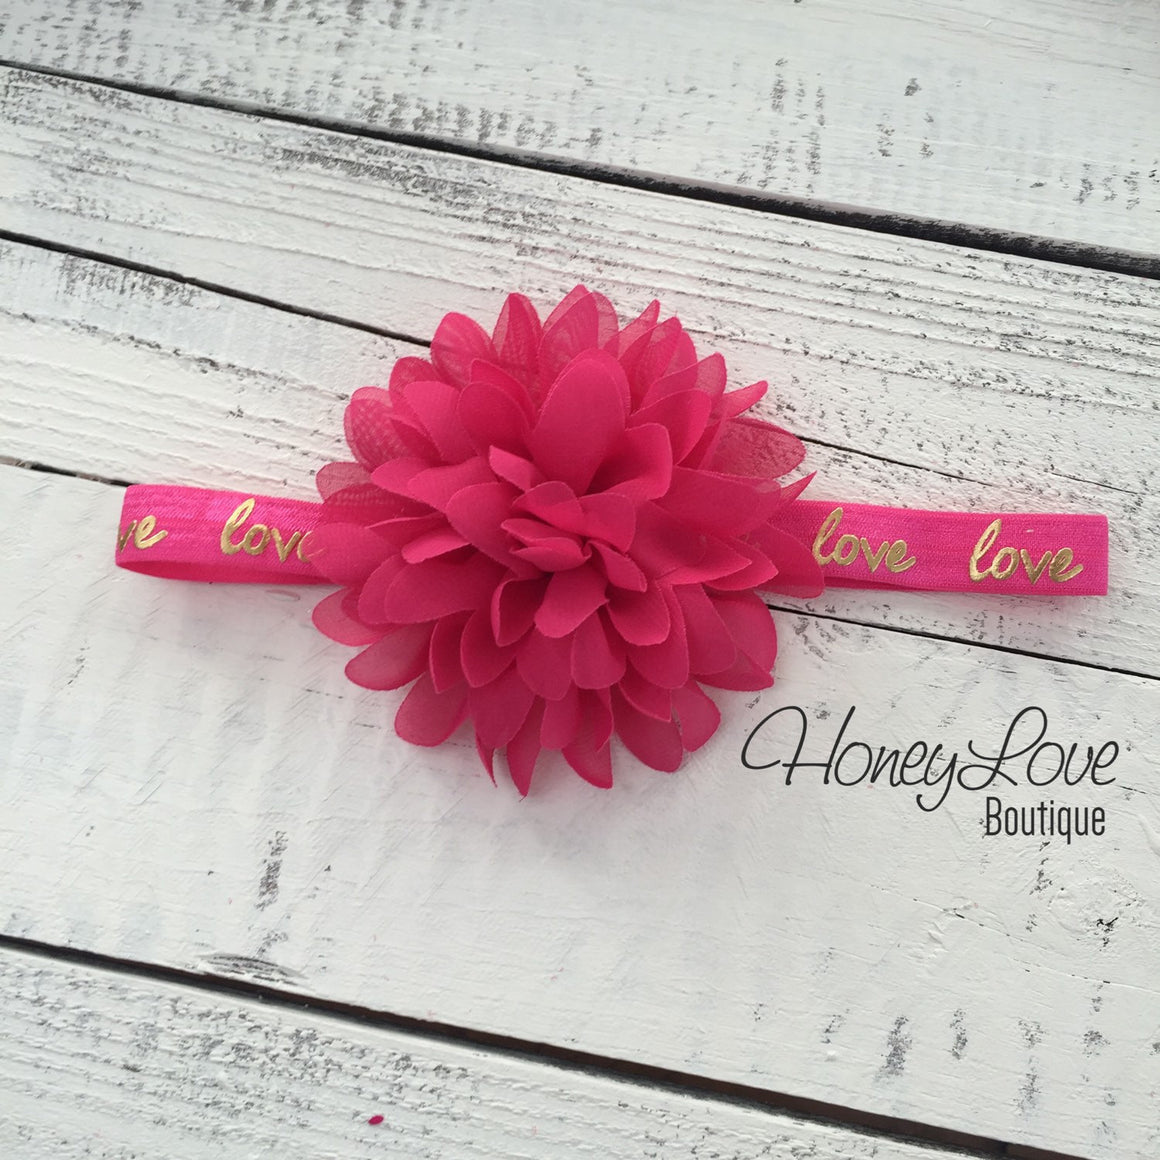 Love gold foil and watermelon pink headband - HoneyLoveBoutique